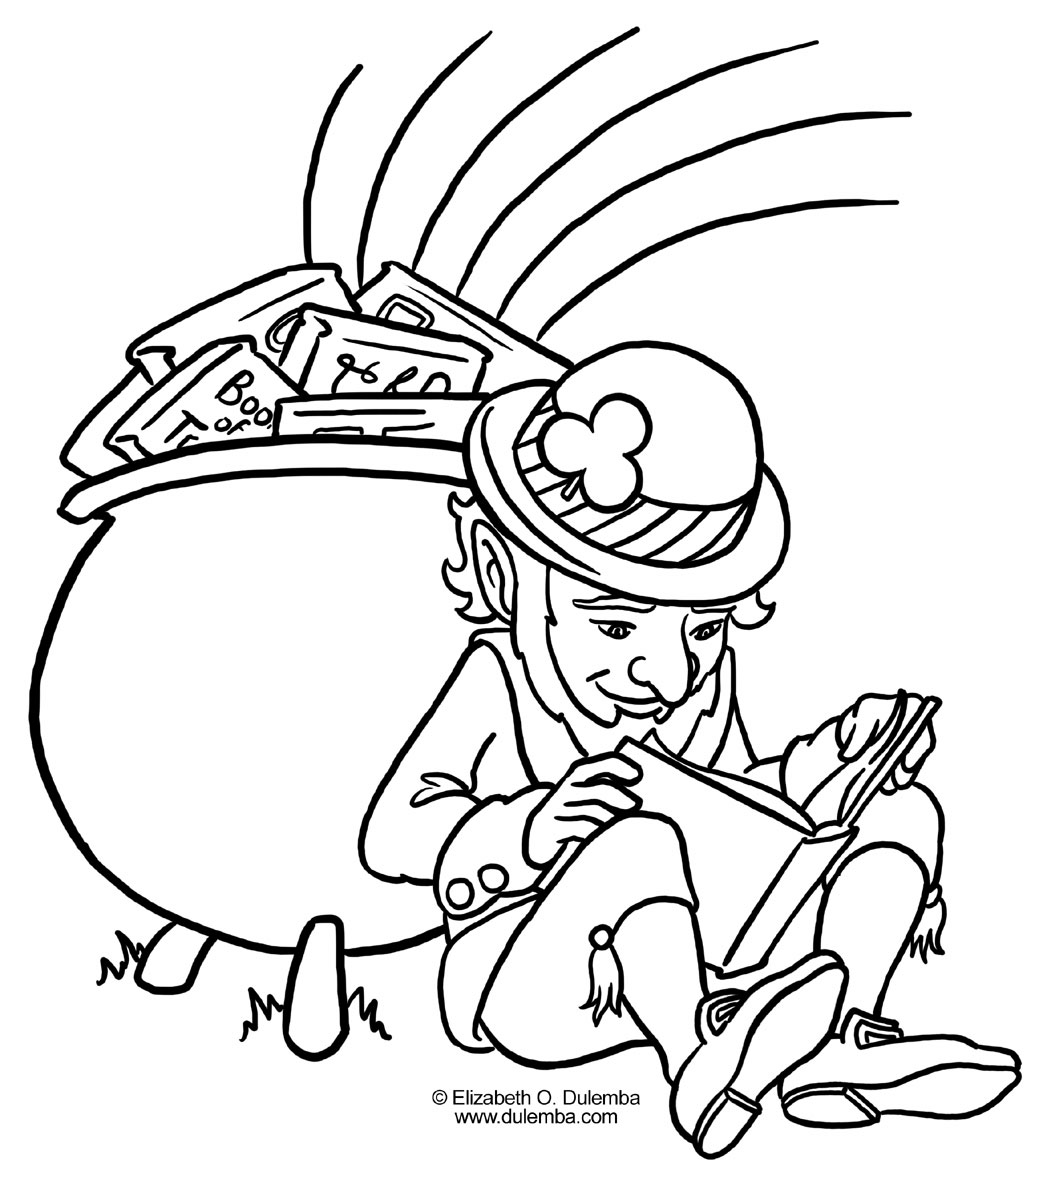 fado chicago st patricks day coloring pages | Happy St. Patrick's Day!